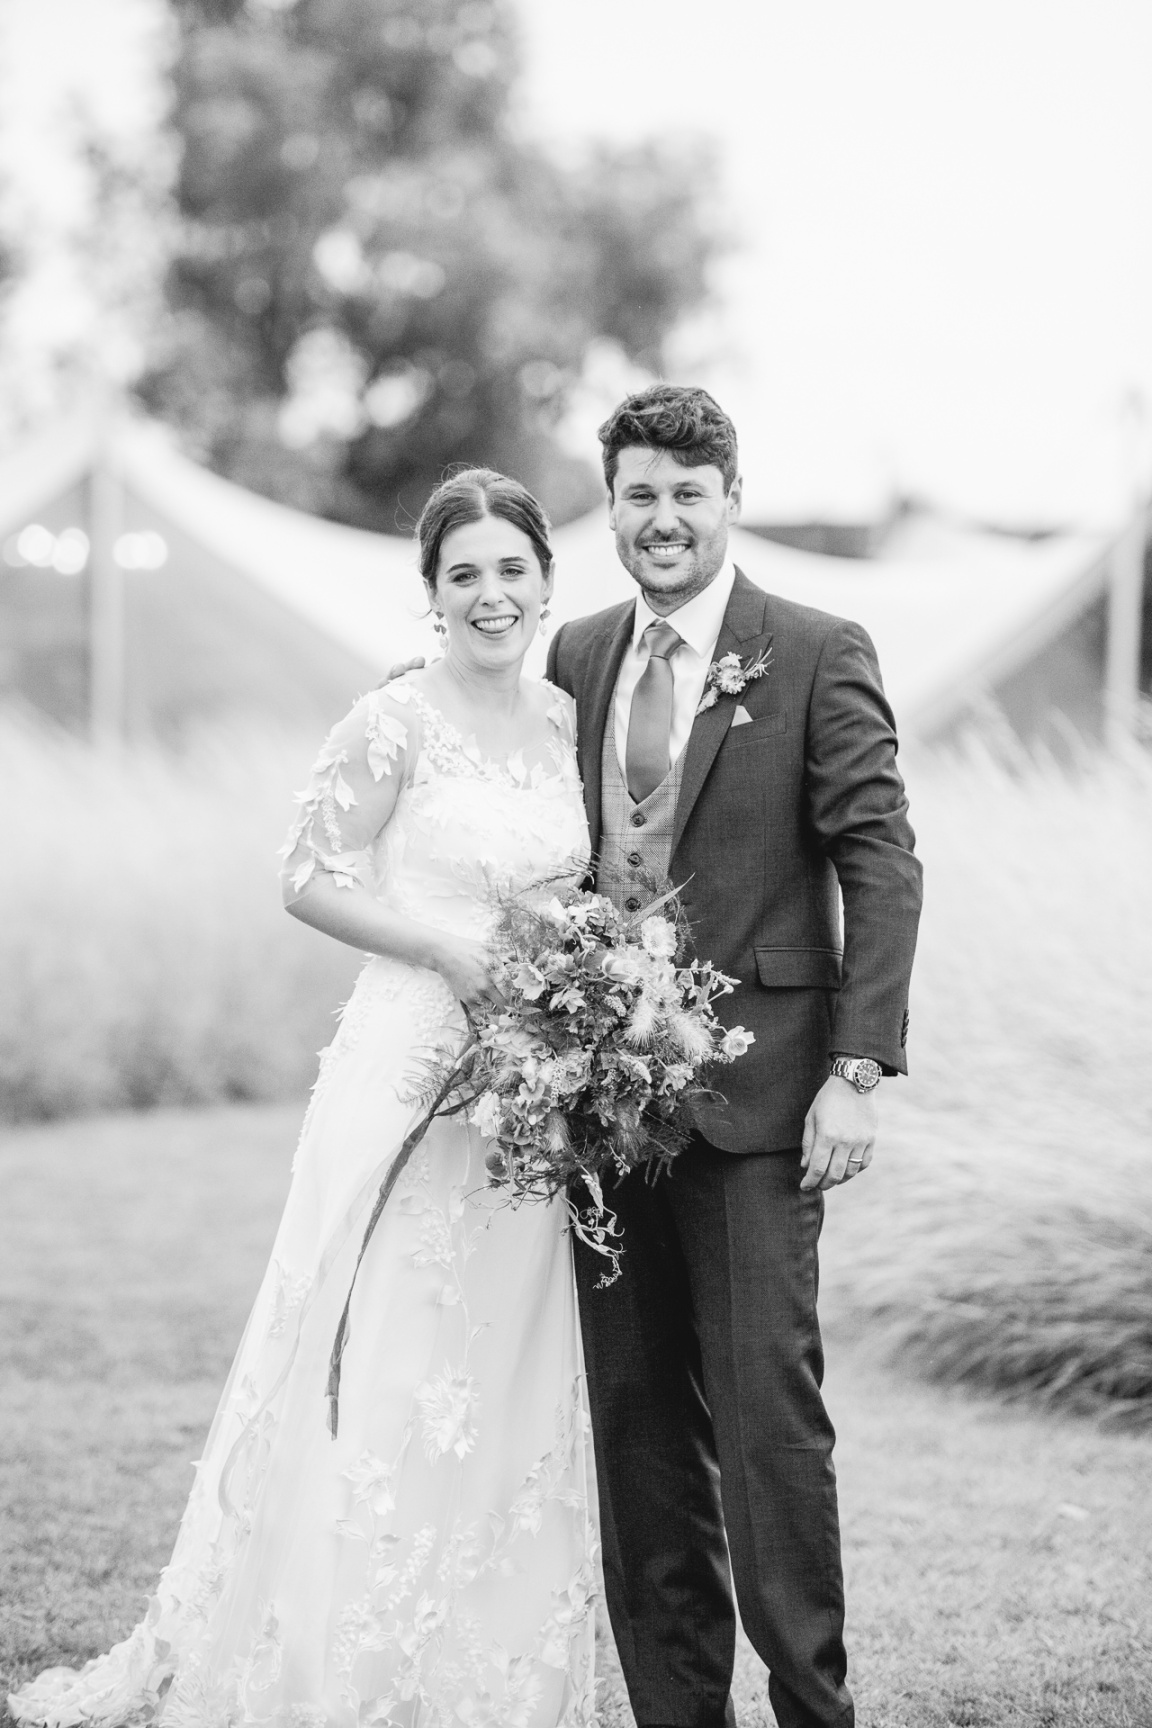 B&A wedding day - Oaktree farm outdoor wedding venue in nottinghamshire / lincolnshire - couple smiling - black & white photo